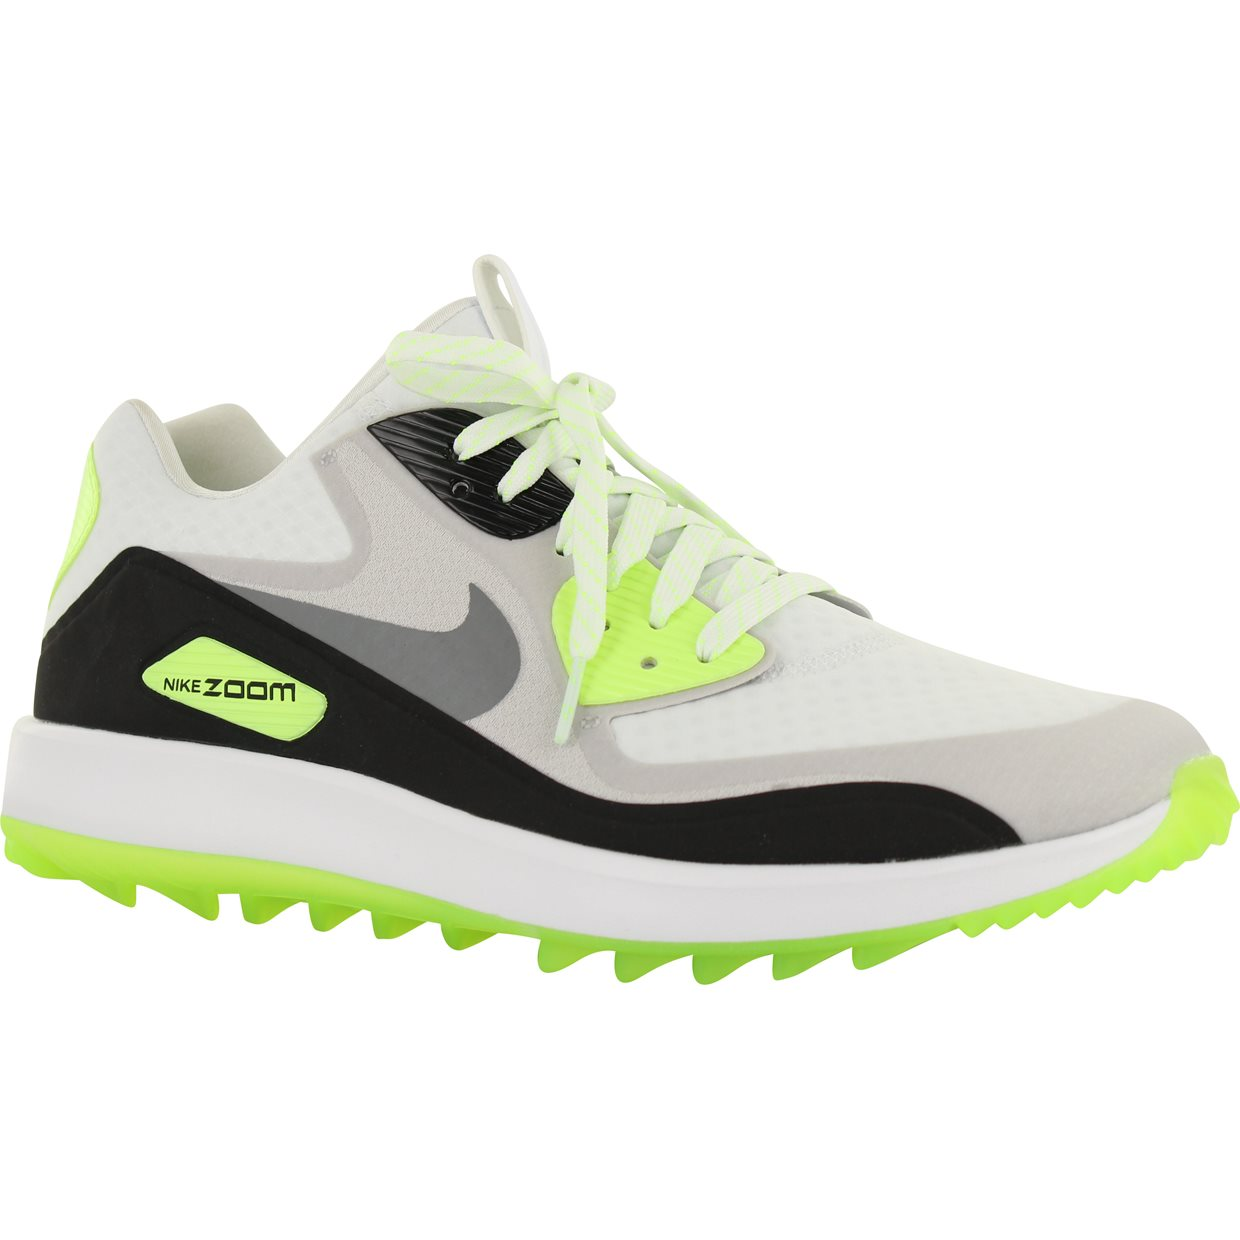 Oakley Grey Golf Shoes